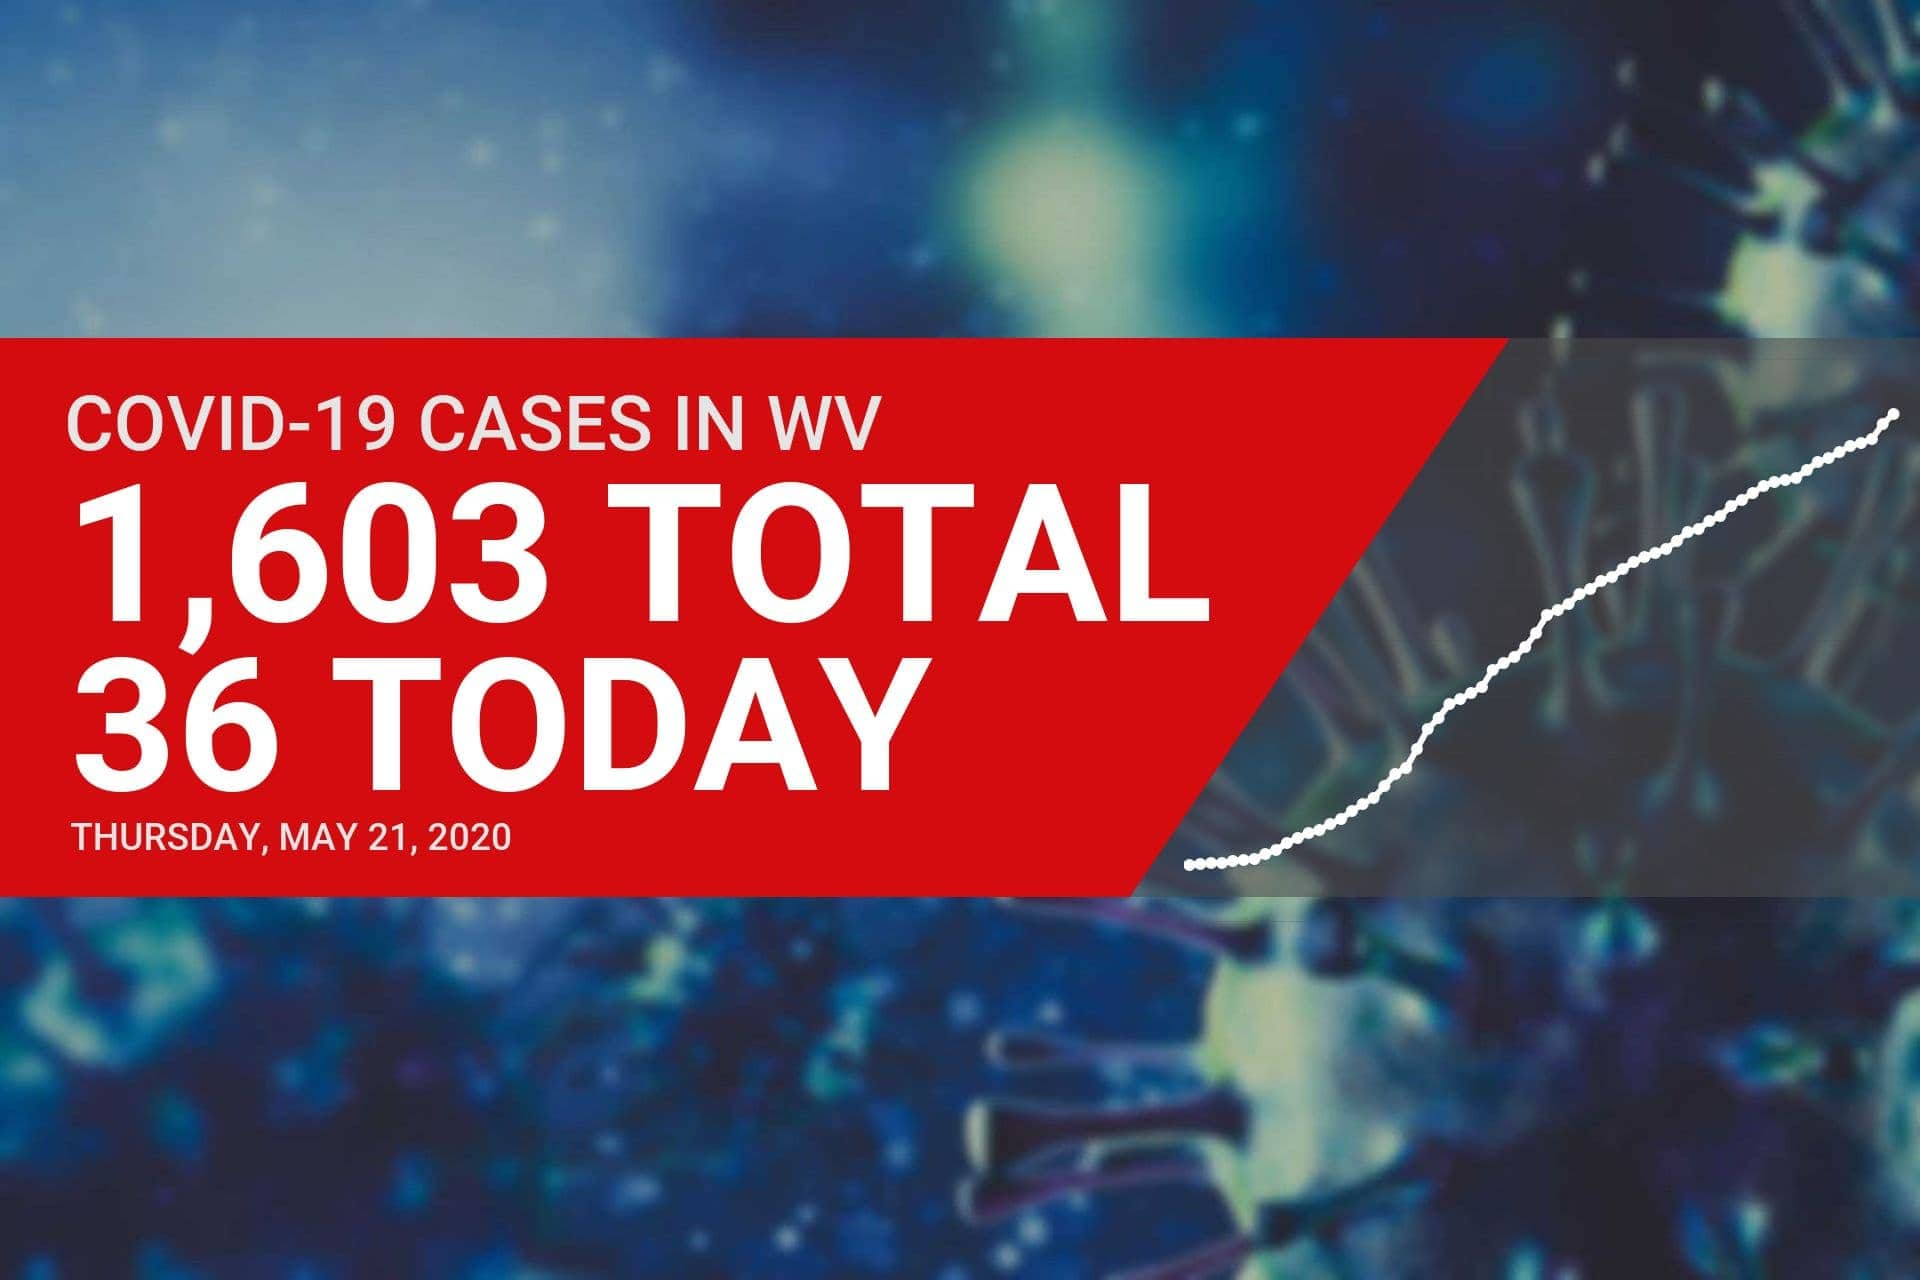 Governor addresses surge in COVID-19 cases in Eastern Panhandle